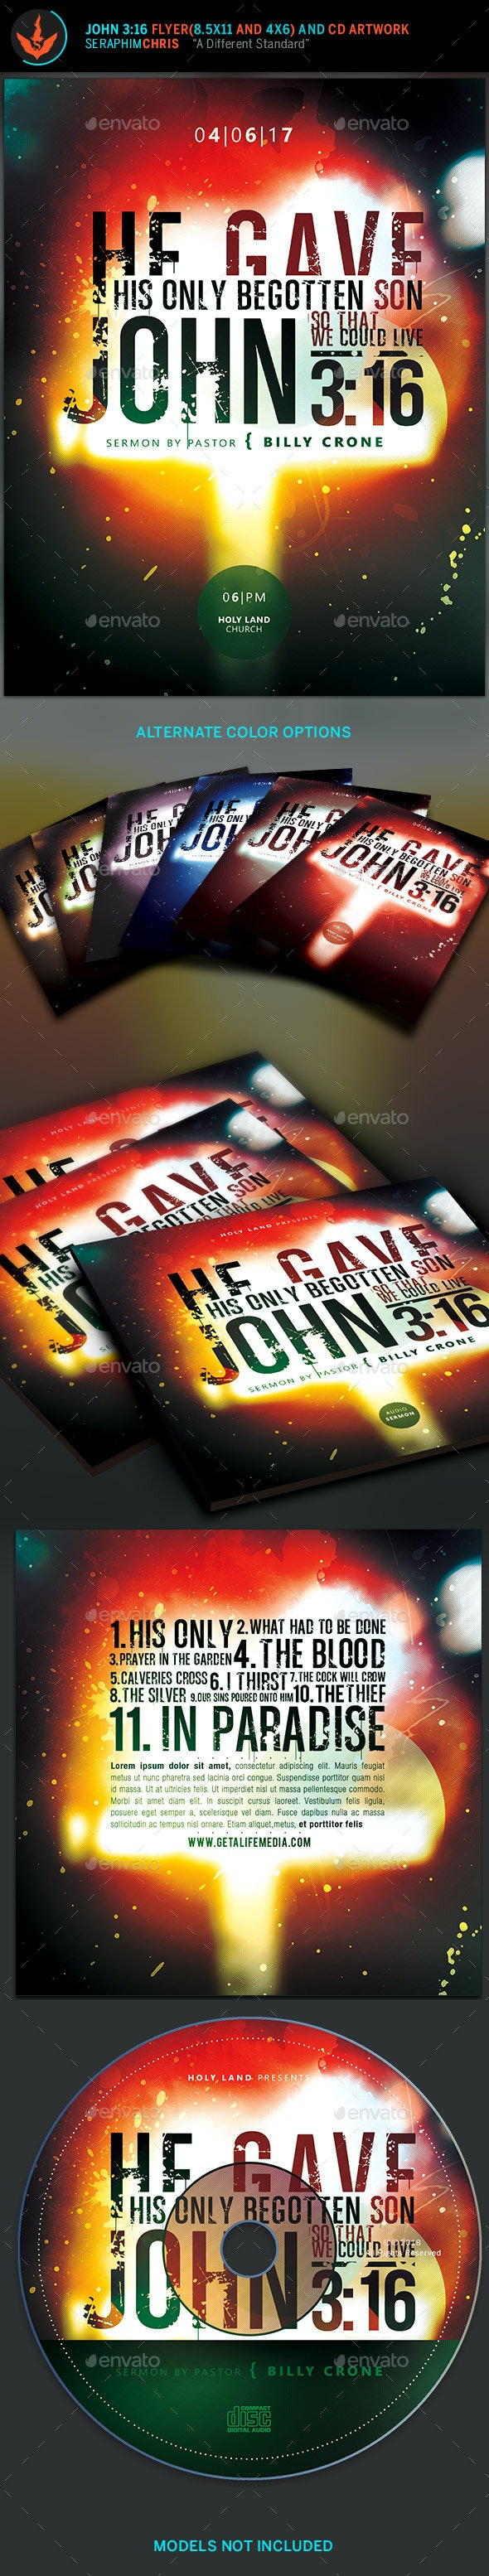 John 3:16 Typography Flyer and CD Template - Church Flyers